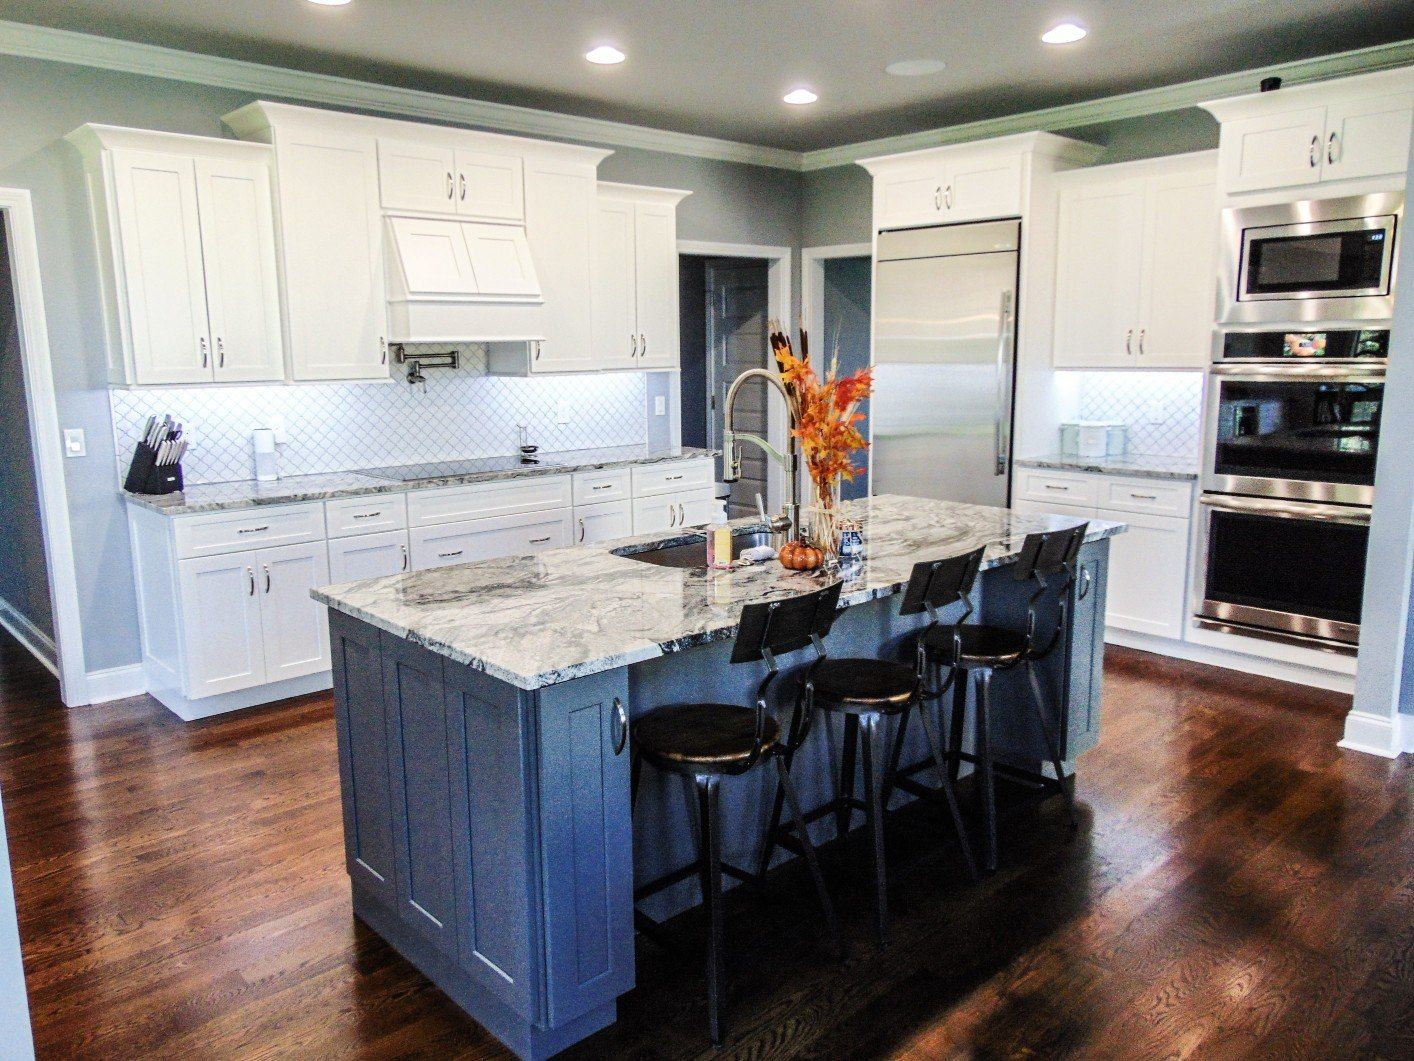 Get a FREE 3D kitchen design - Lily Ann Cabinets | White ...